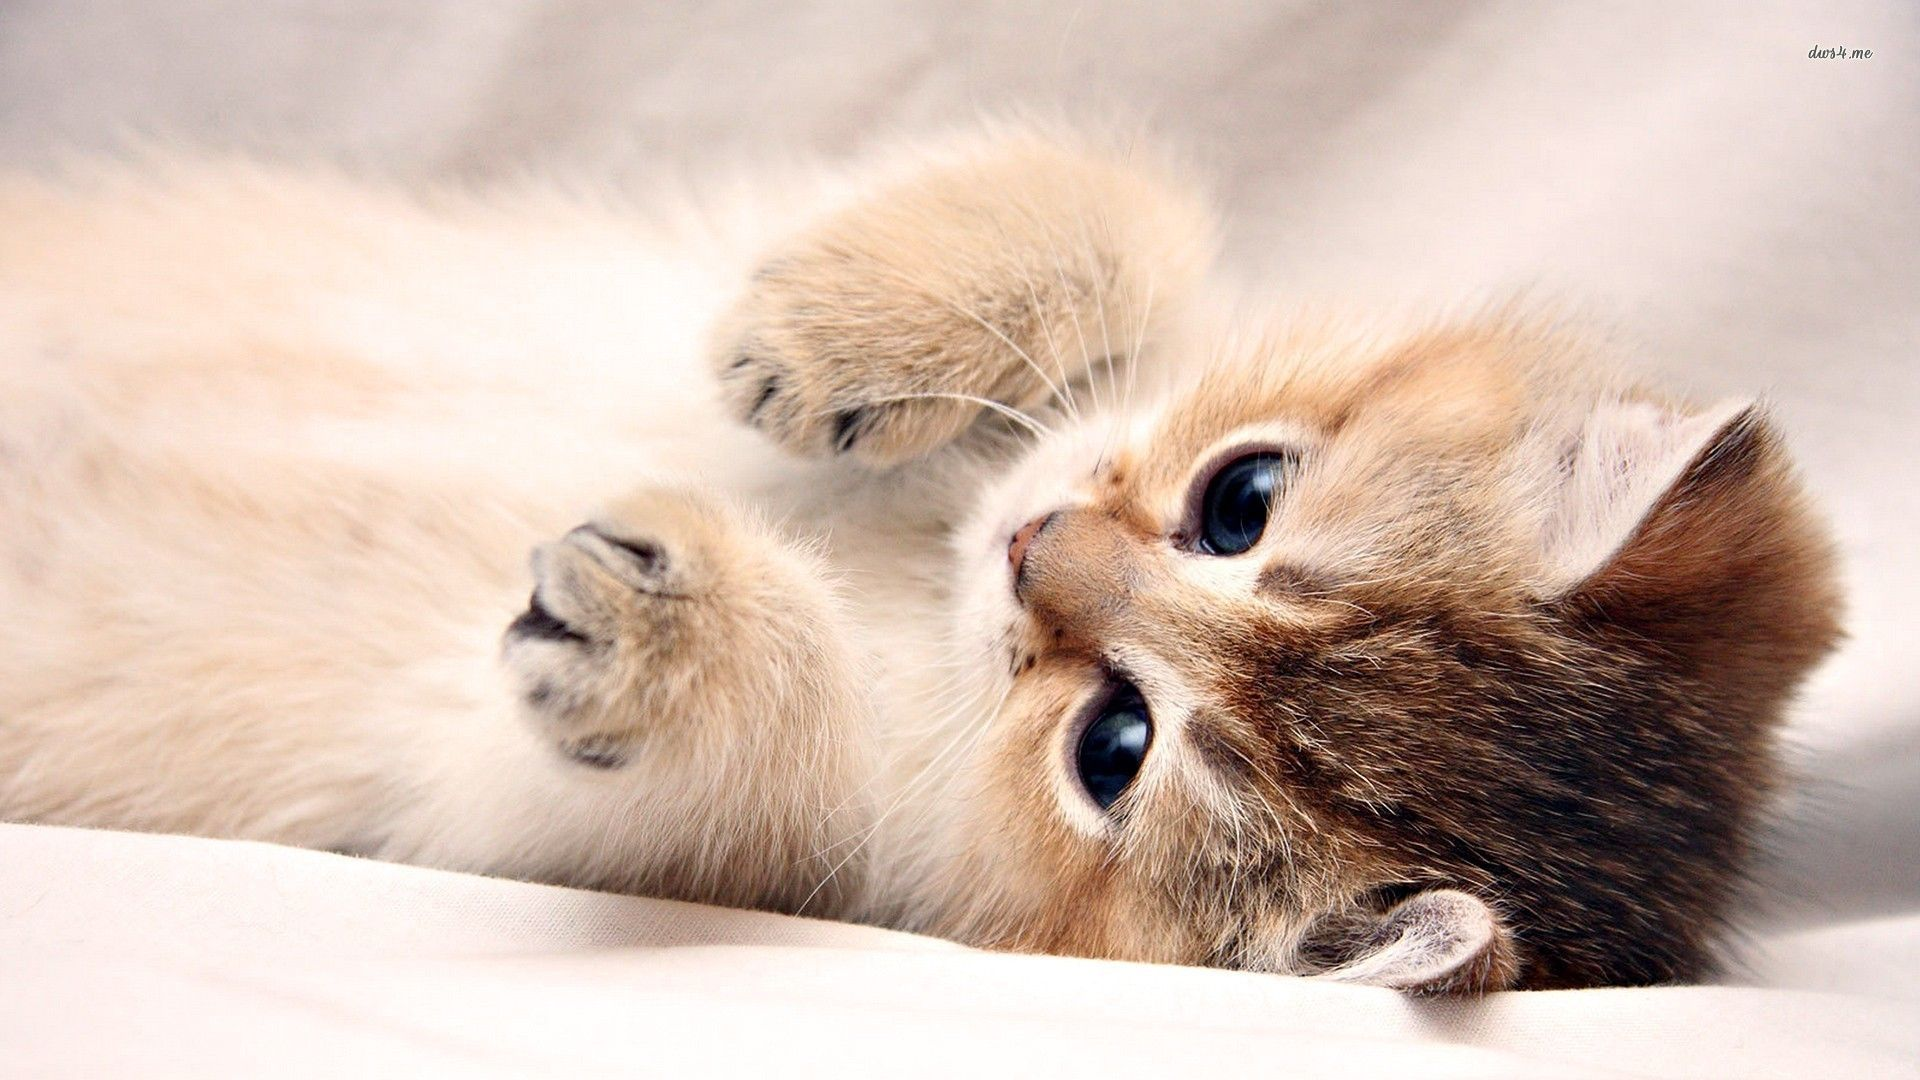 Kitten wallpaper 1280x800 download best hd desktop wallpapers kitten wallpaper 1280x800 download best hd desktop wallpapers thecheapjerseys Gallery